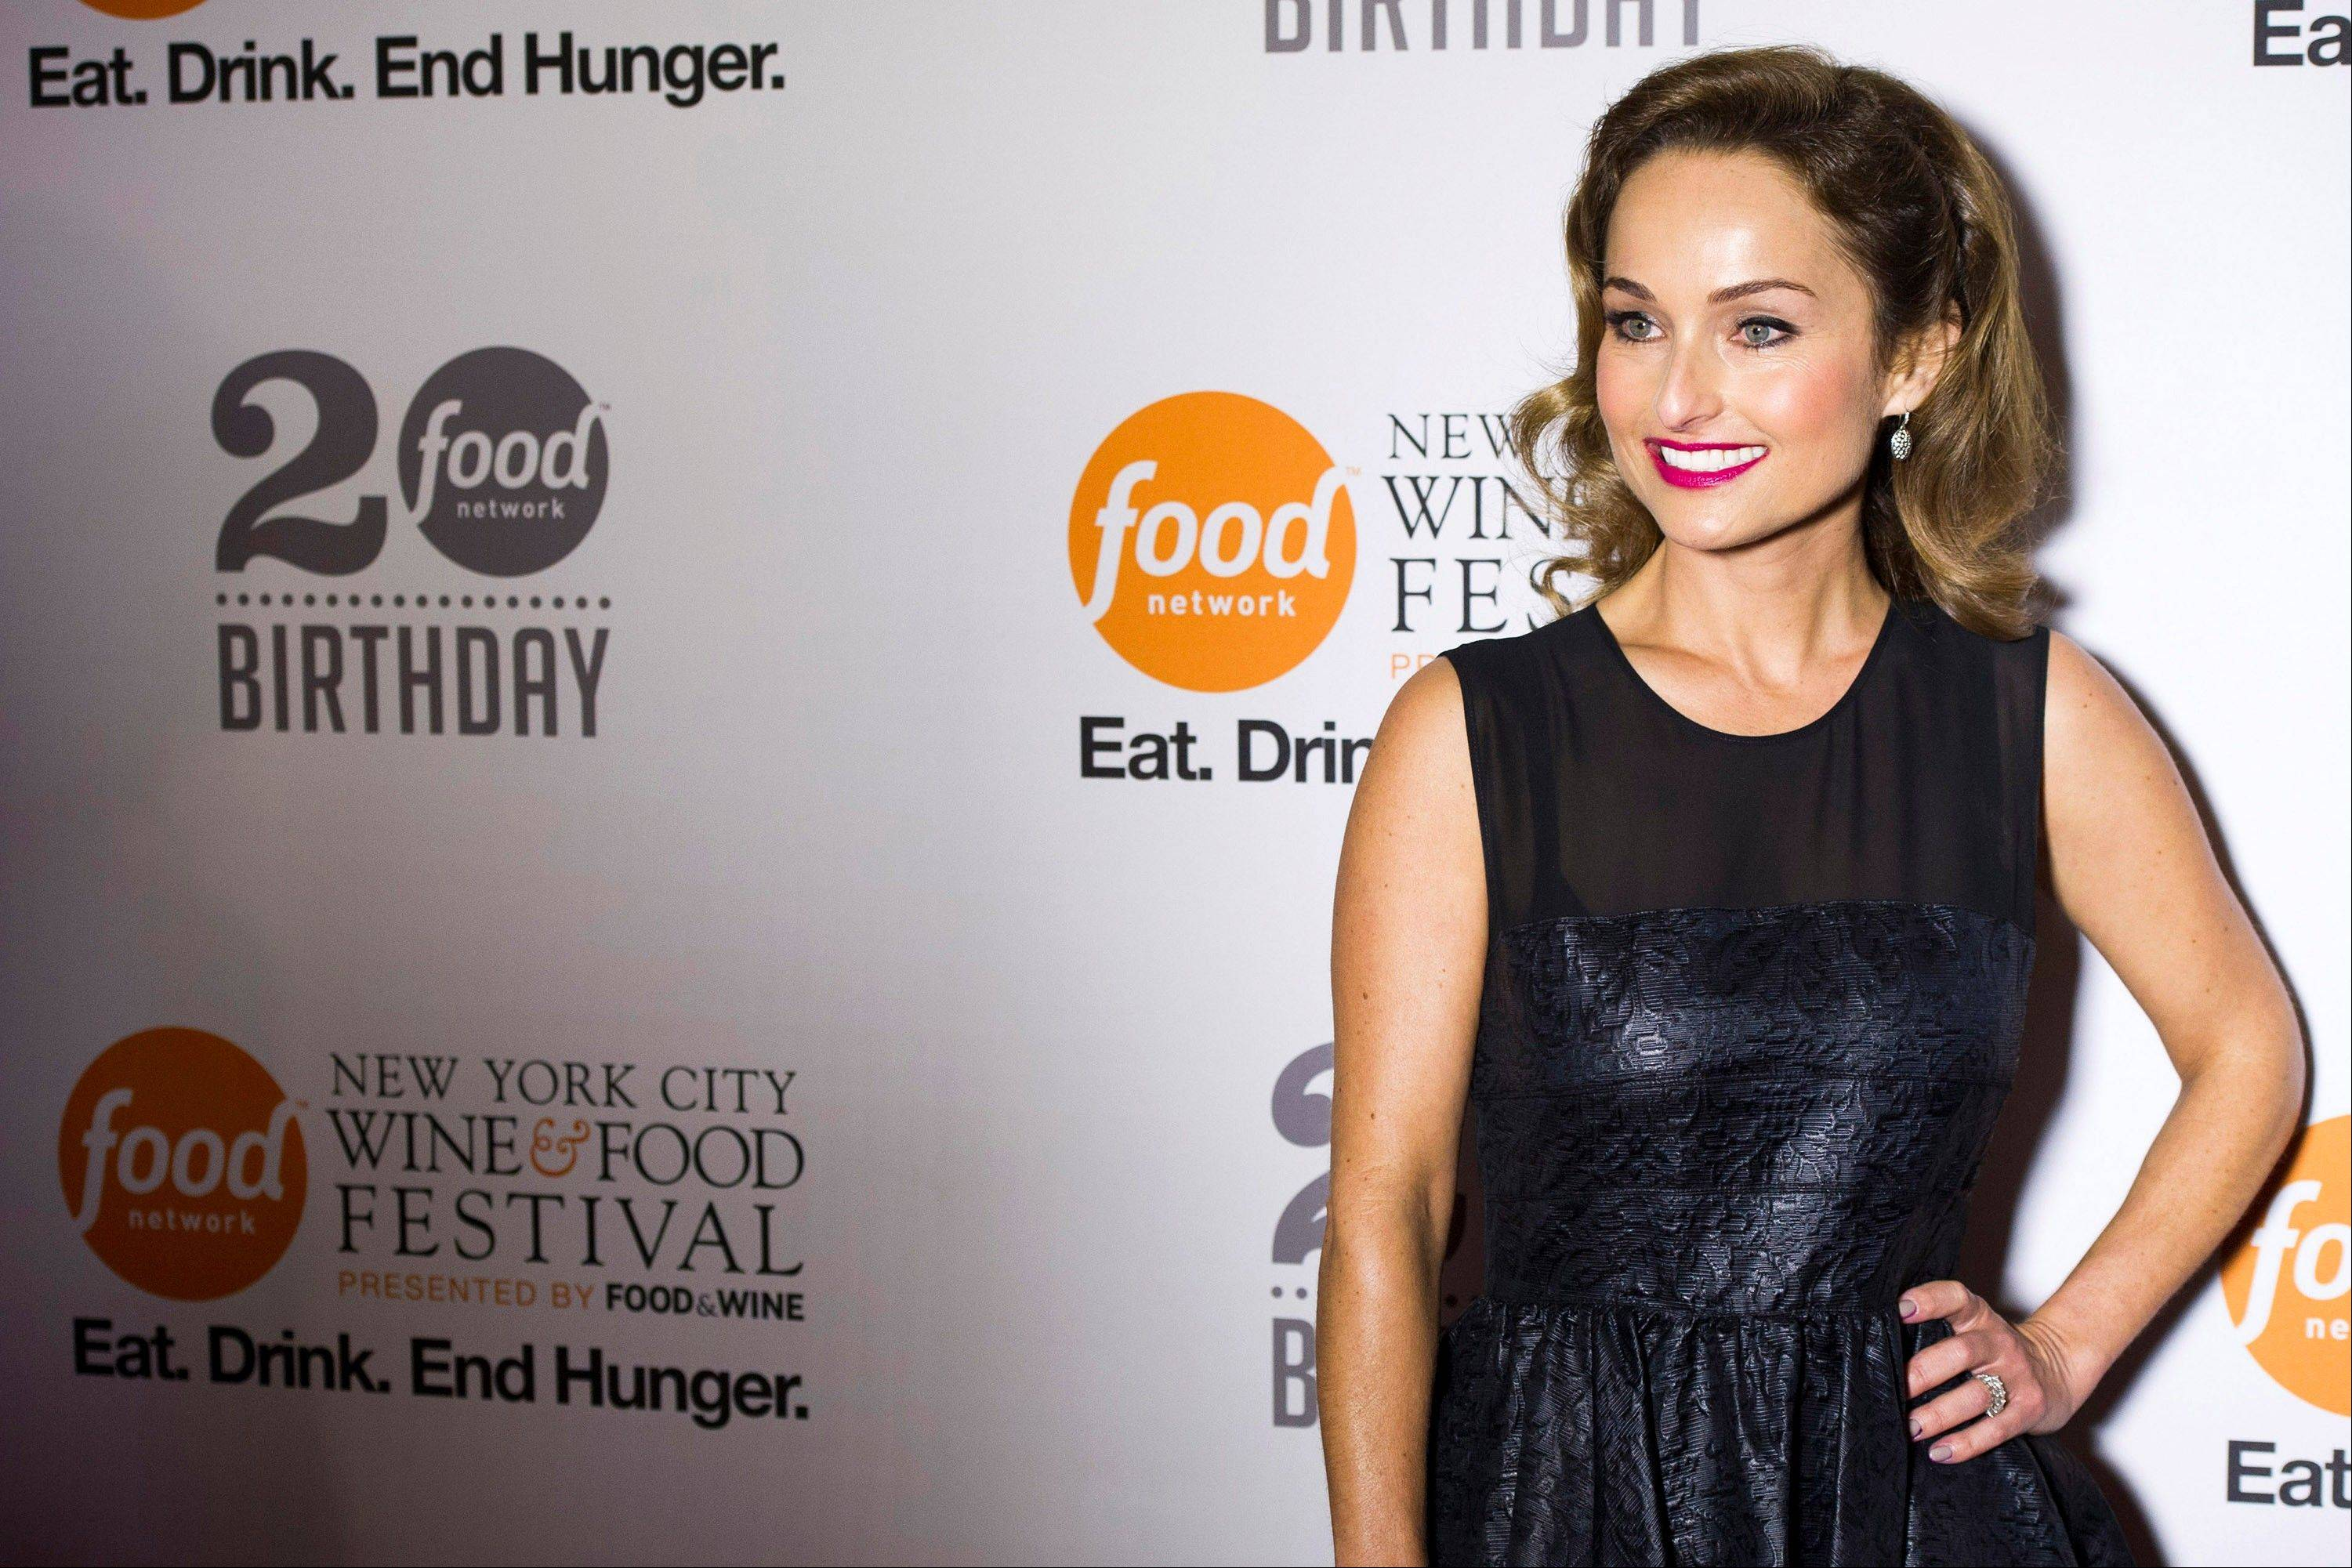 Giada De Laurentiis attends the Food Network's 20th birthday party on Thursday in New York.